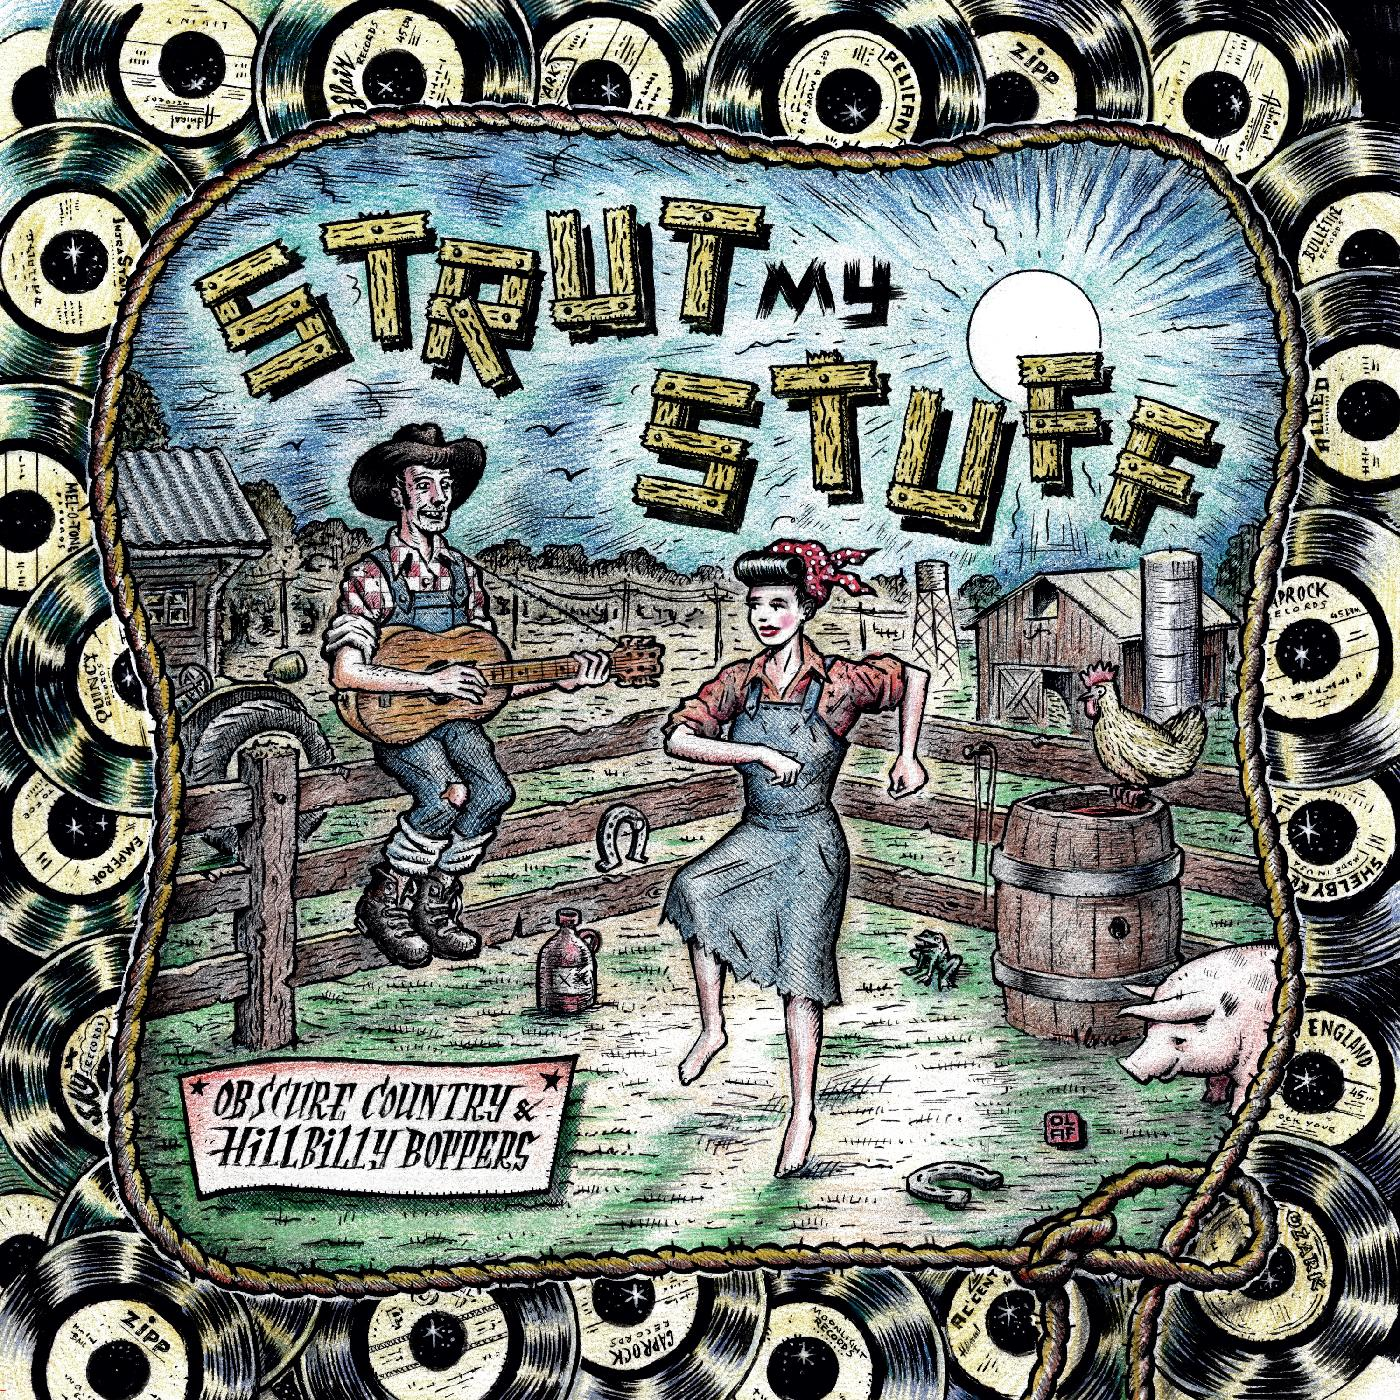 Strut My Stuff album cover